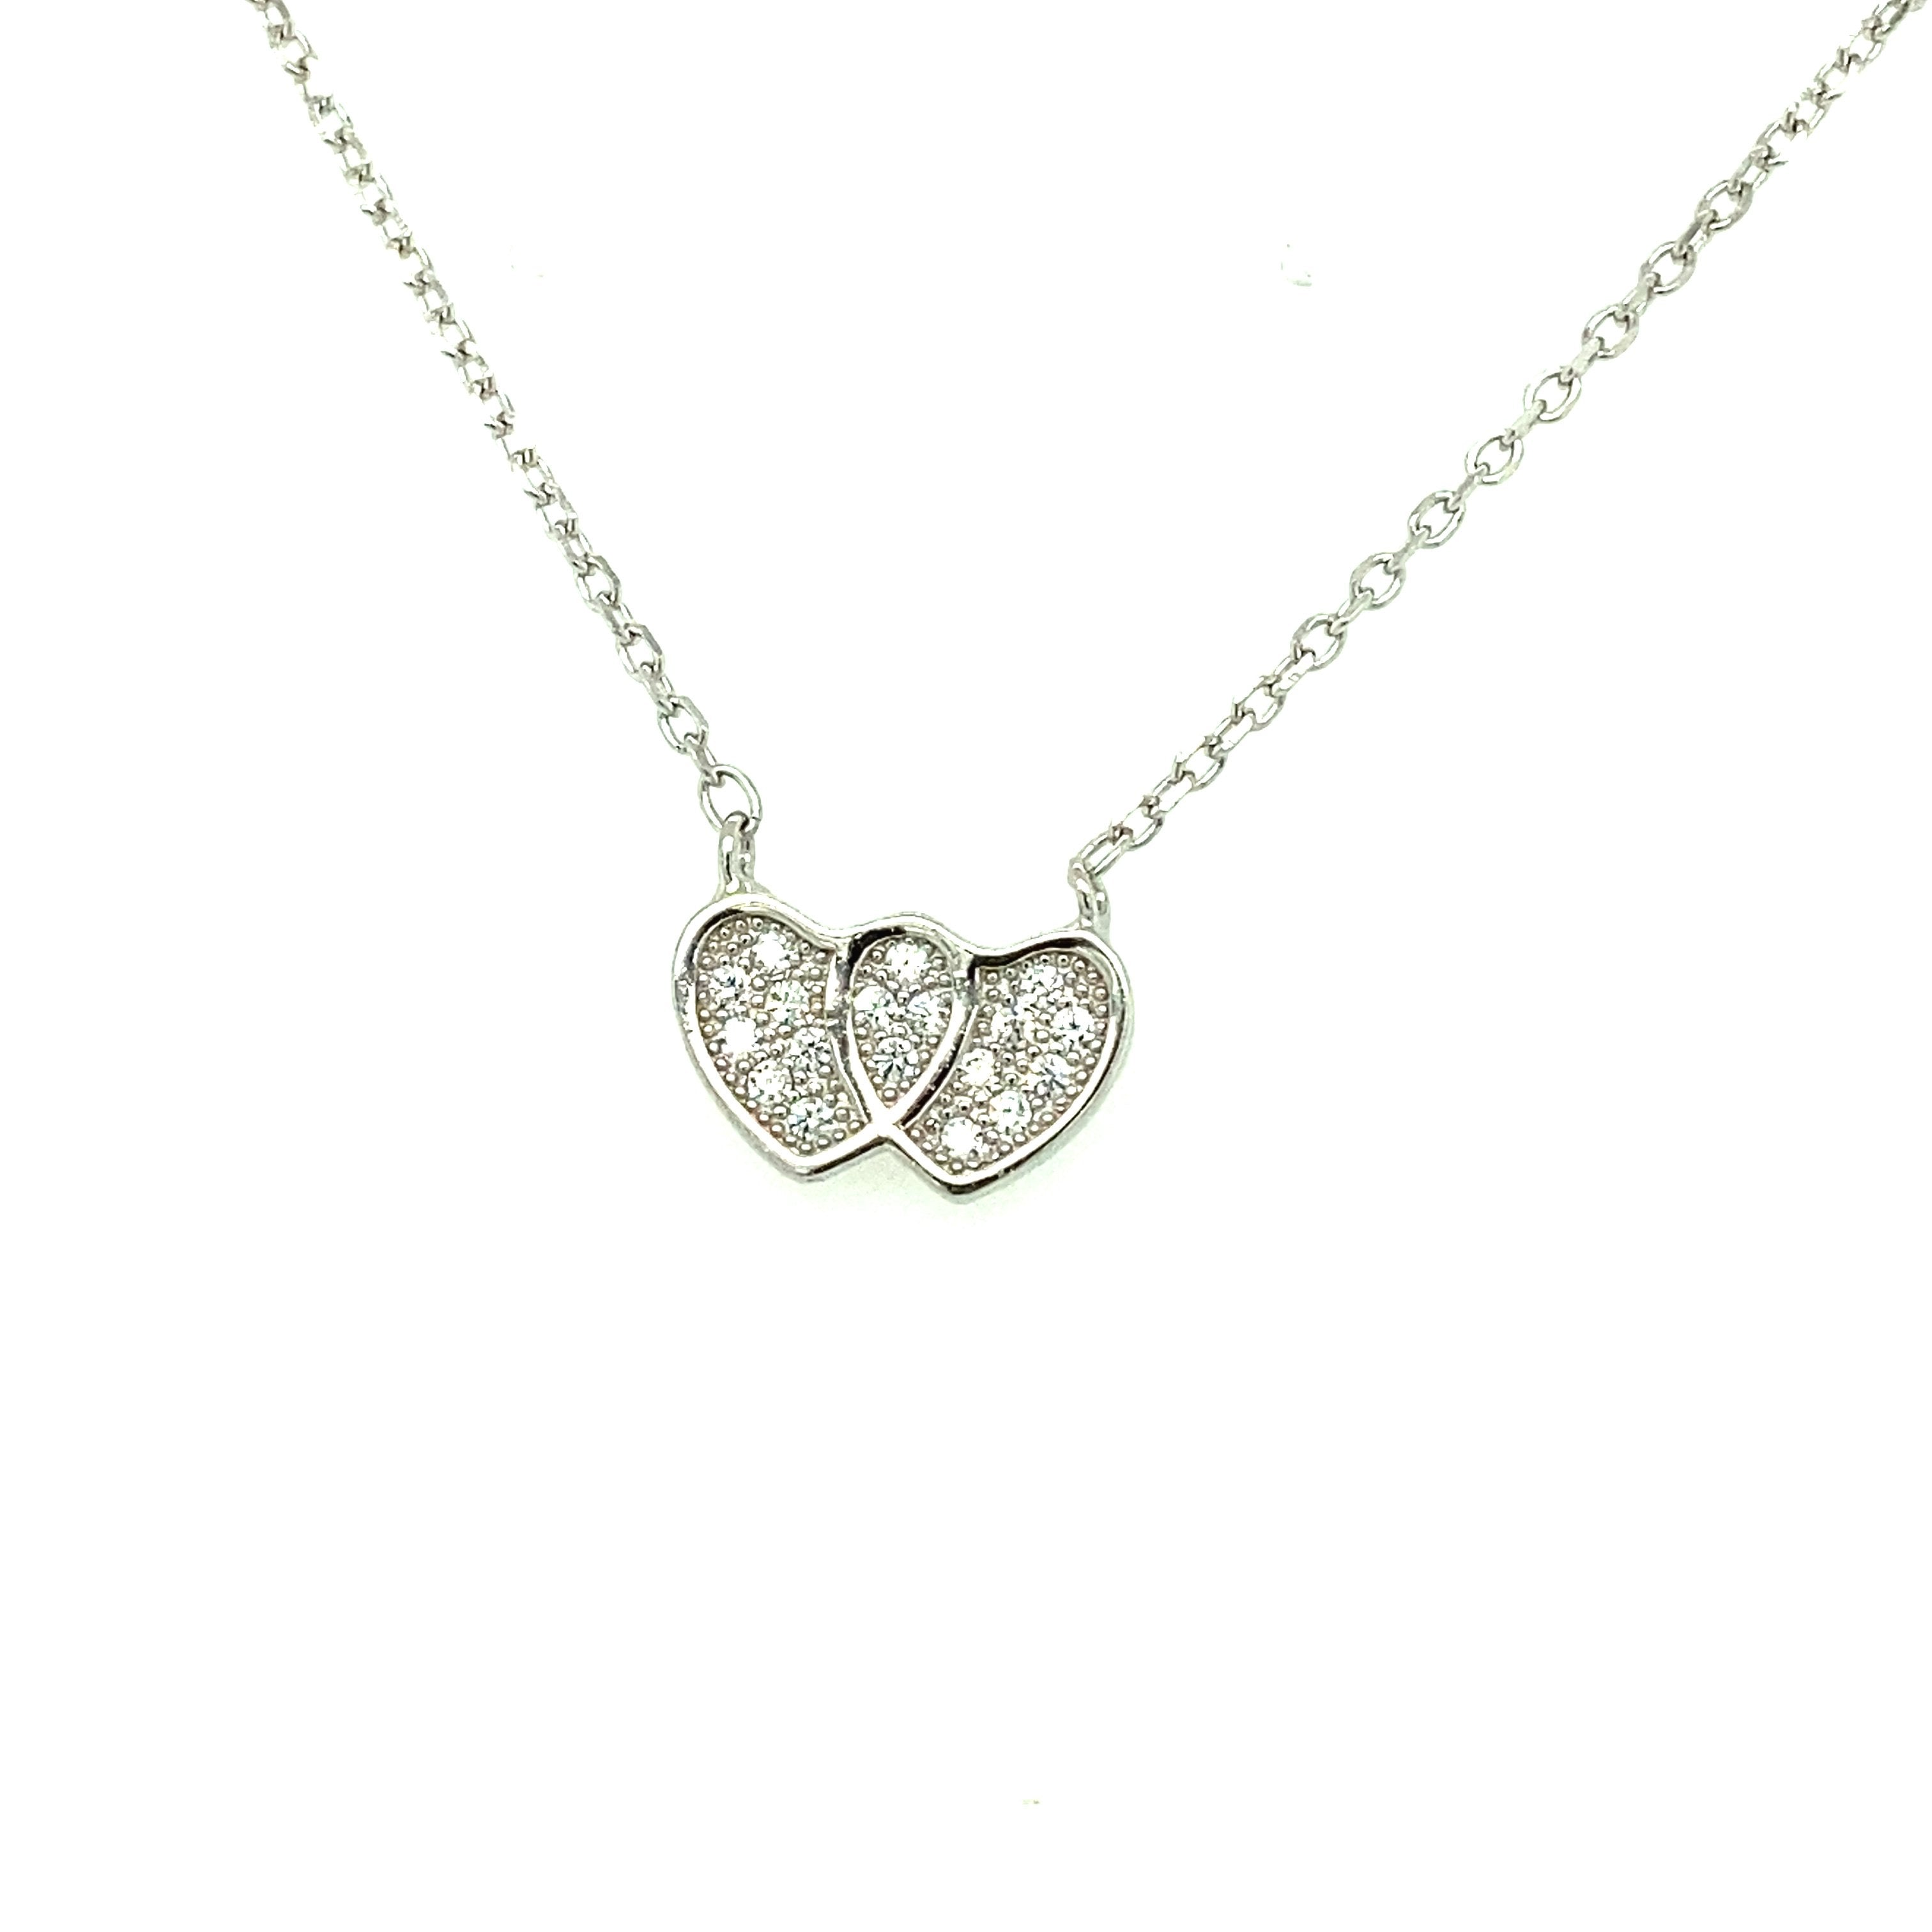 Necklace n1590 - 925 Sterling Silver